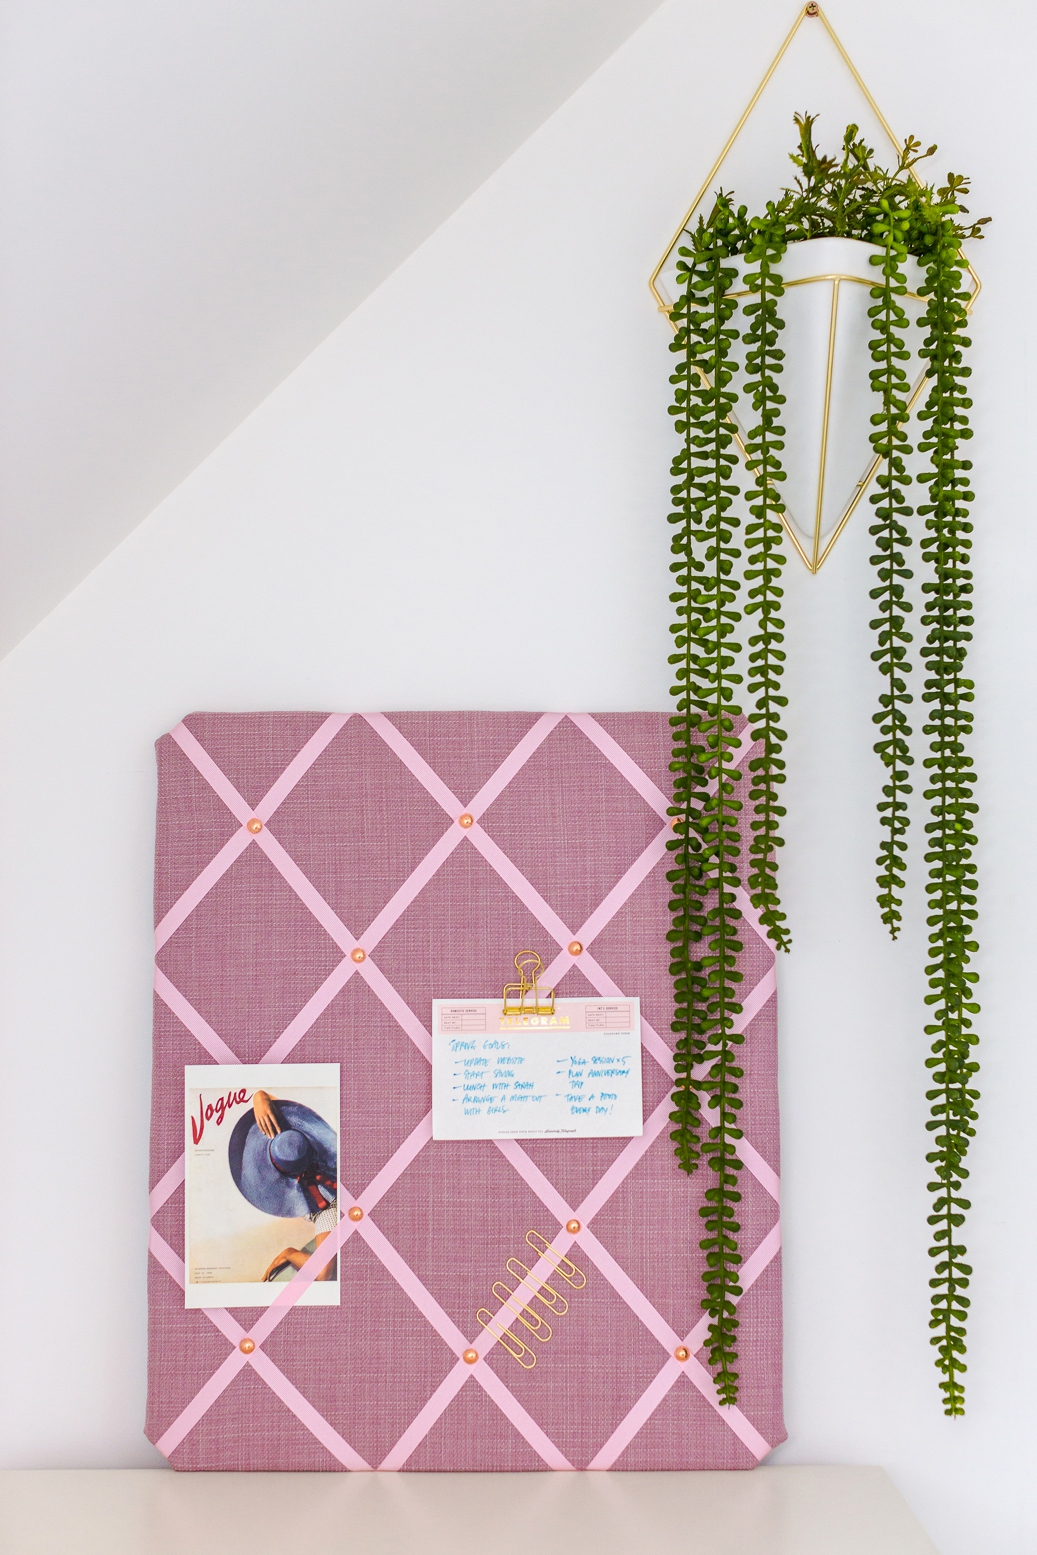 Colourful content creation for Noticeboard Store. Product photography & styling by Marianne Taylor.